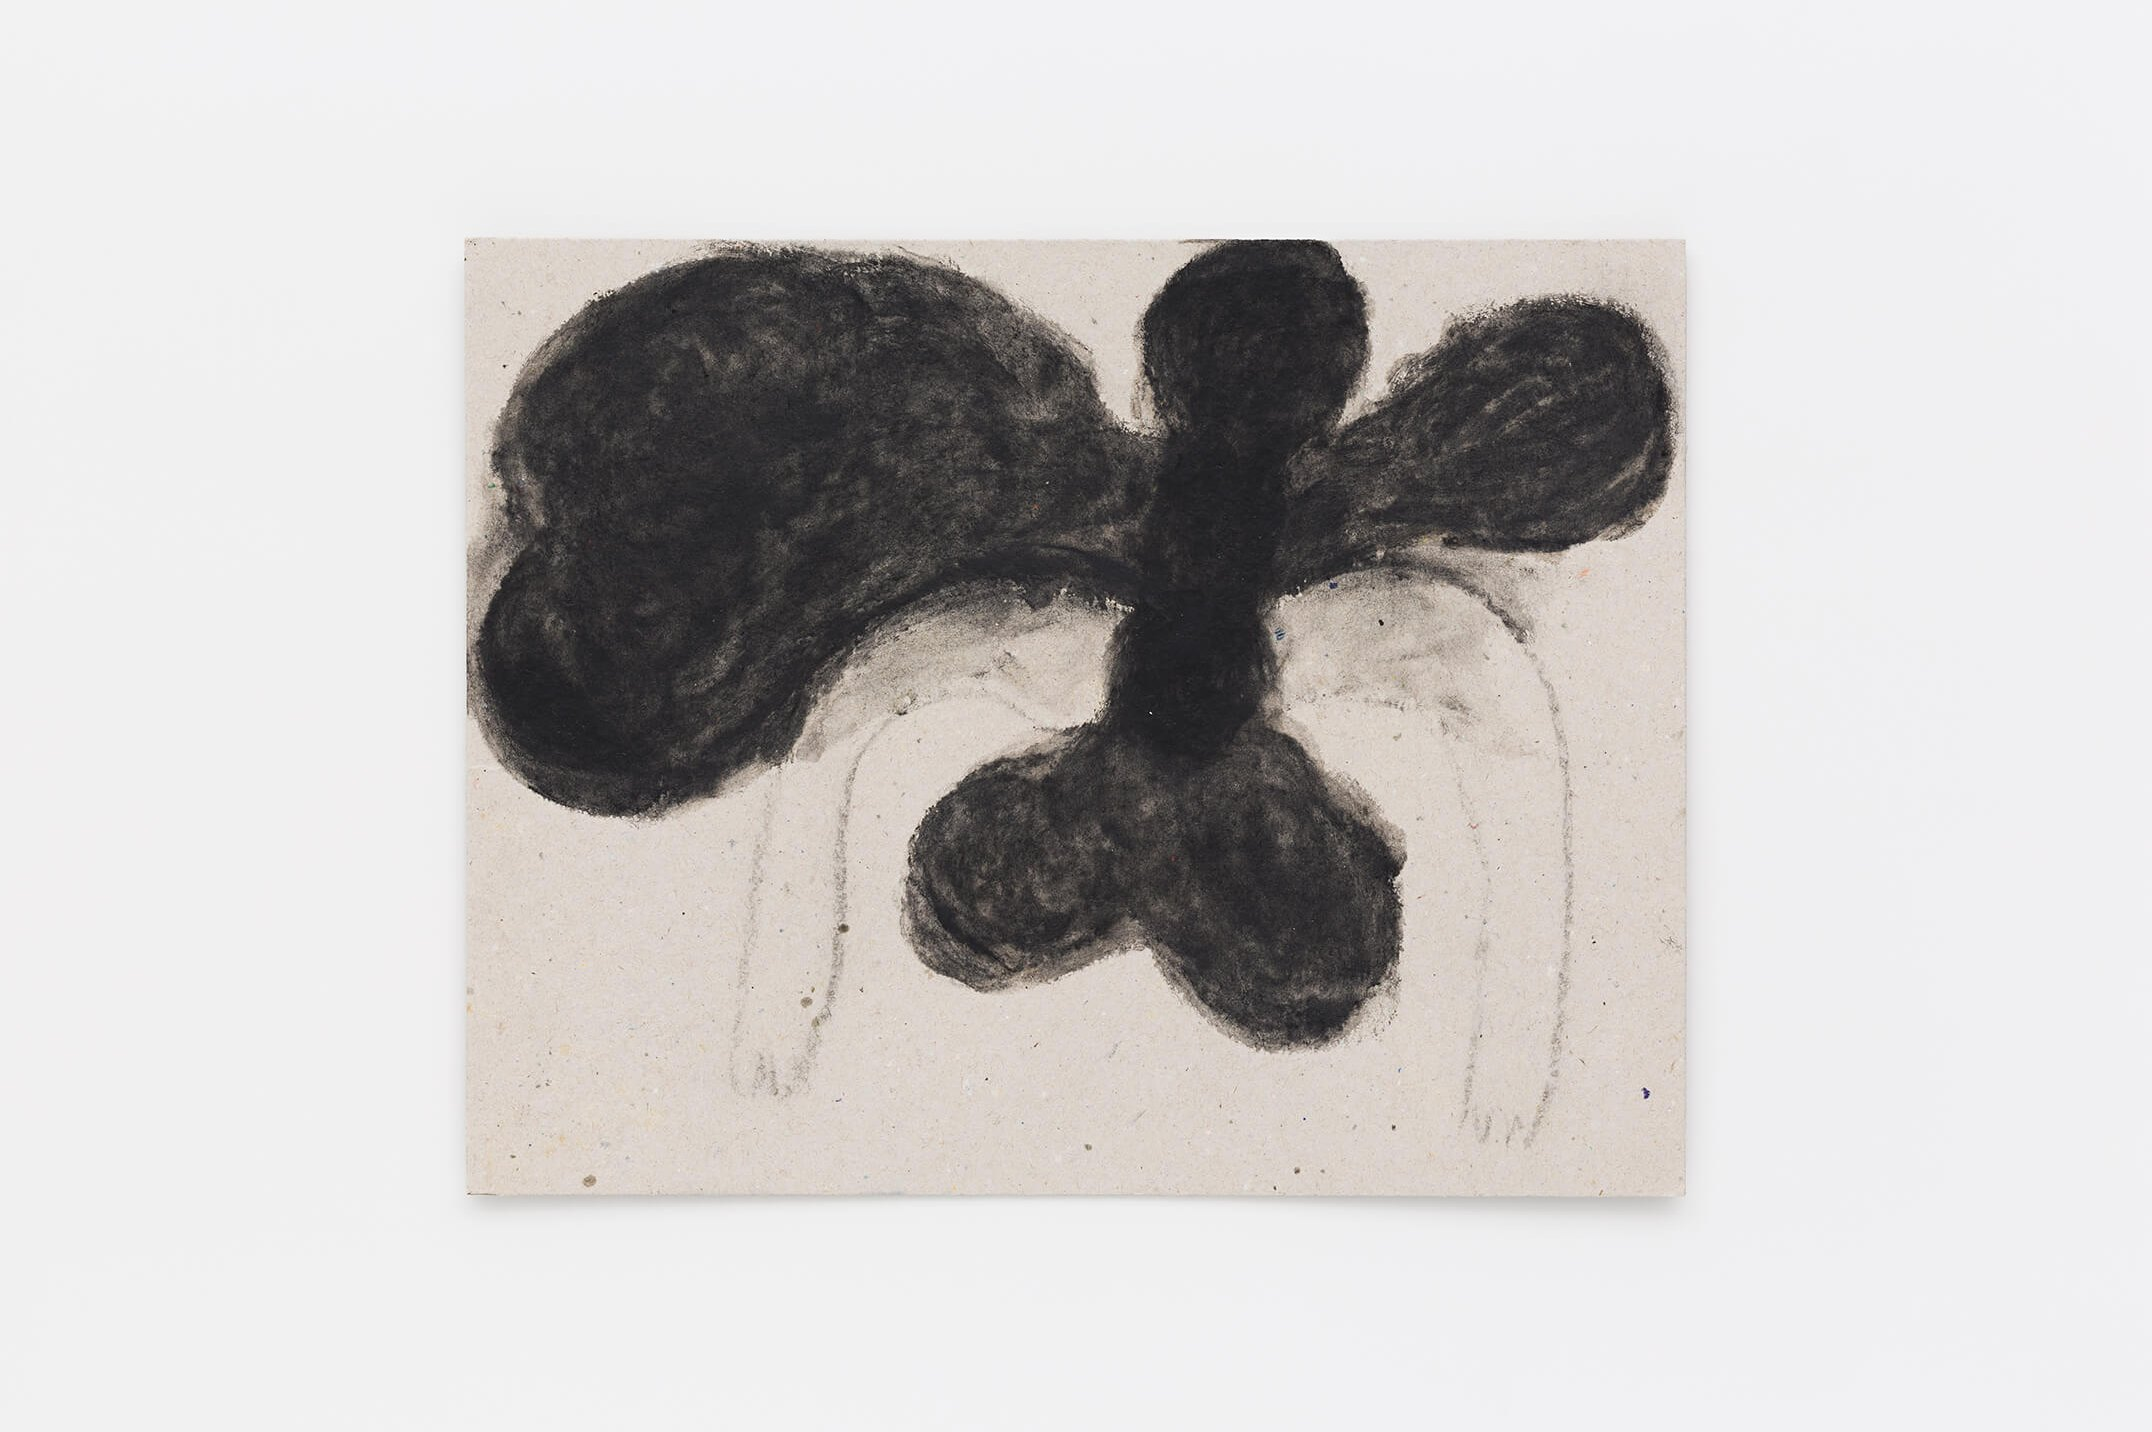 Solange Pessoa, <em>untitled</em>, 2009, pastel on cardboard, 16,5 × 23,8 cm - Mendes Wood DM